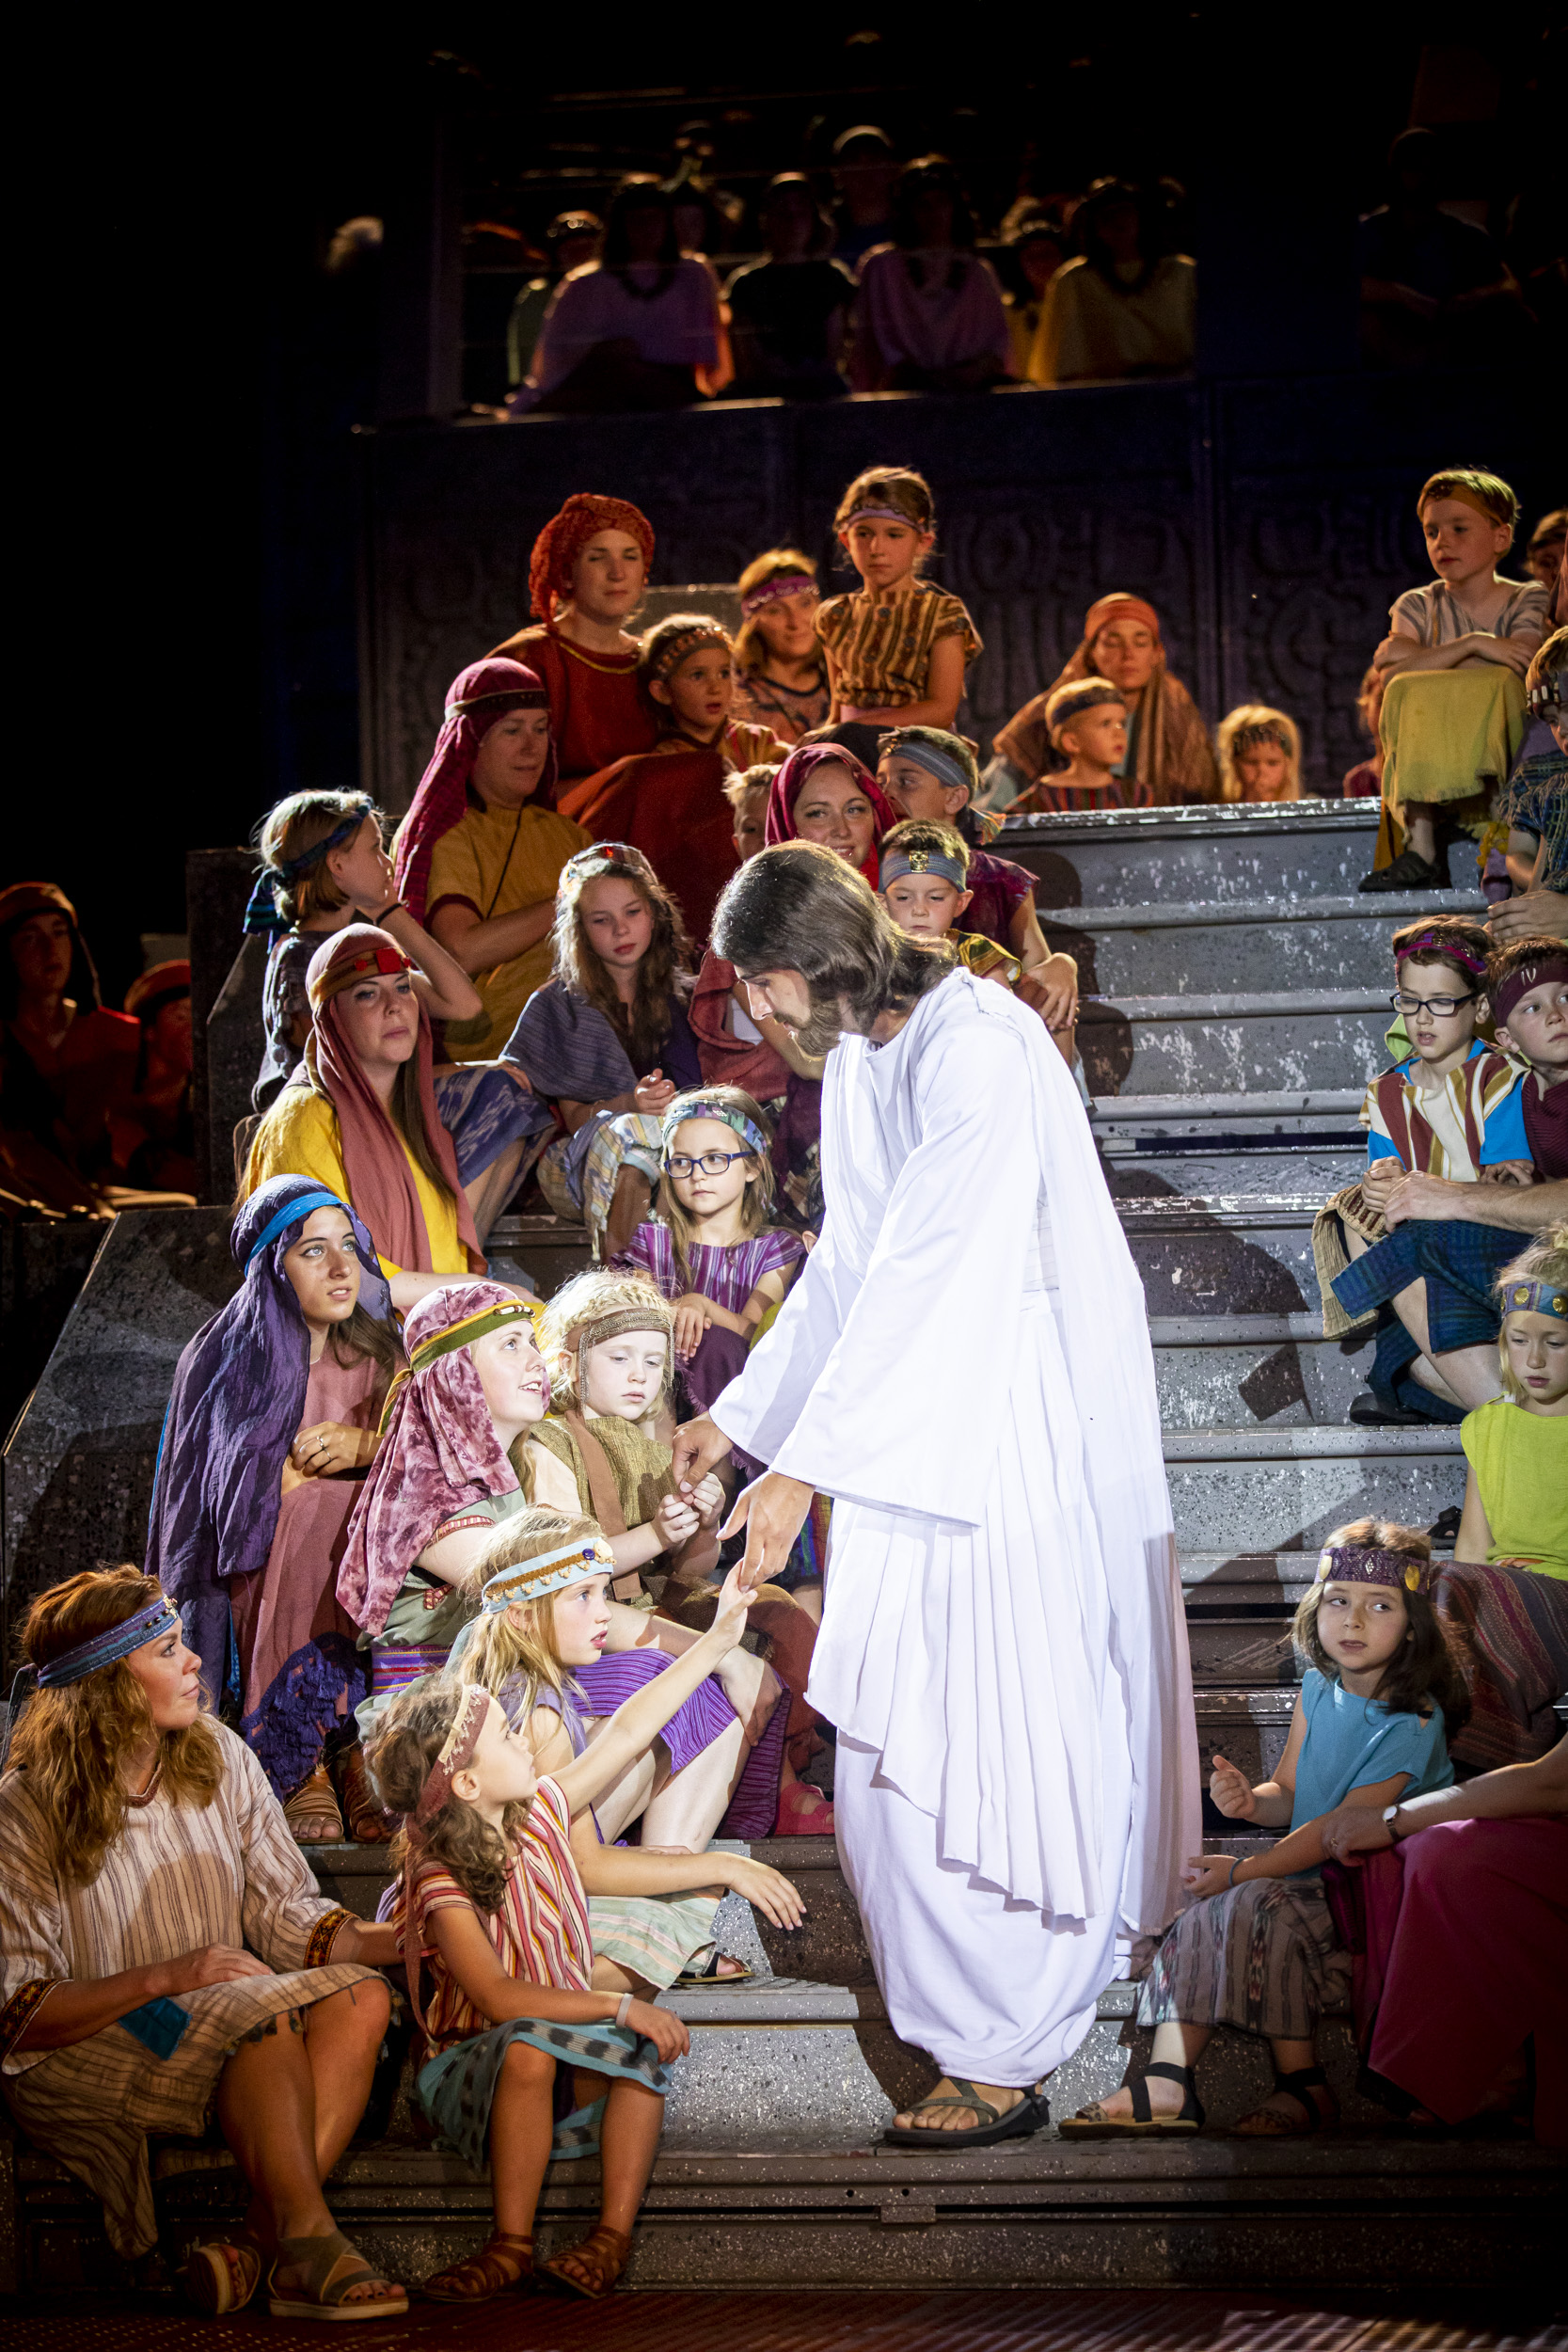 A scene from the Hill Cumorah Pageant depicts the Savior visiting the Americas. The pageant ran July 11-13 and 16-20, 2019, on the hillside next to the Hill Cumorah Visitors' Center in Manchester, New York.